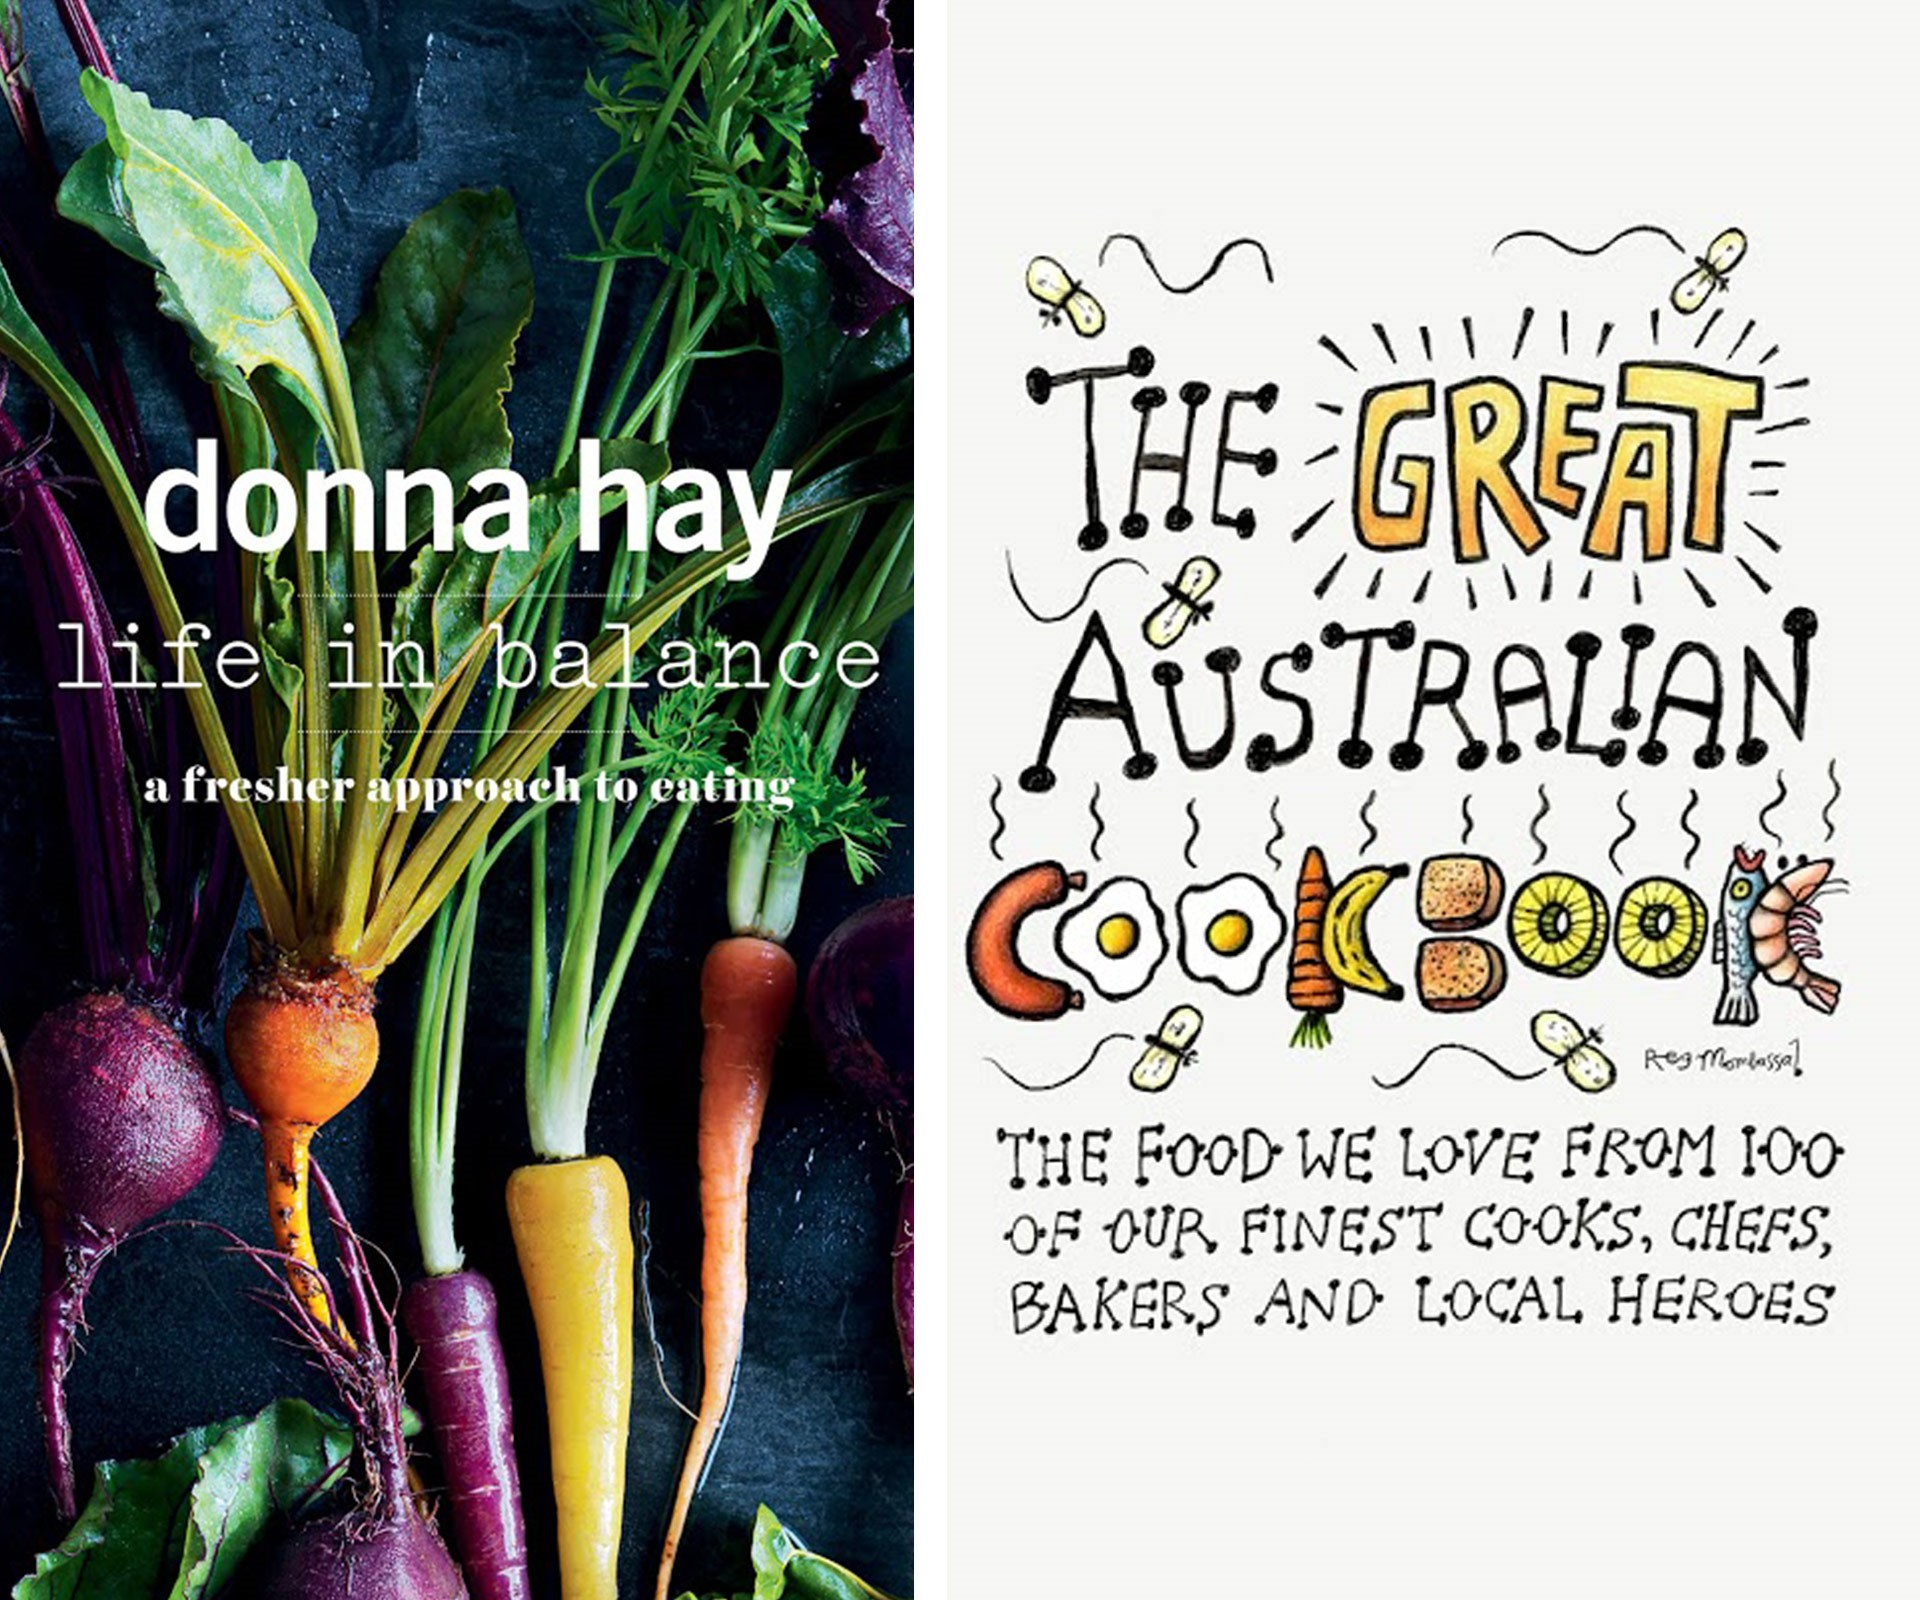 "For all the budding cooks out there, look no further than Donna Hay''s *Life in Balance*. The celebrated cook gives her take on ""realistic, sustainable and more balanced approach to fresher, healthier eating."" For your family's well-rounded chef, check out *The Great Australian Cookbook*. Featuring 165 recipes, it is the ultimate celebration of the food we love from 100 of Australia's finest cooks, chefs, bakers and local heroes."